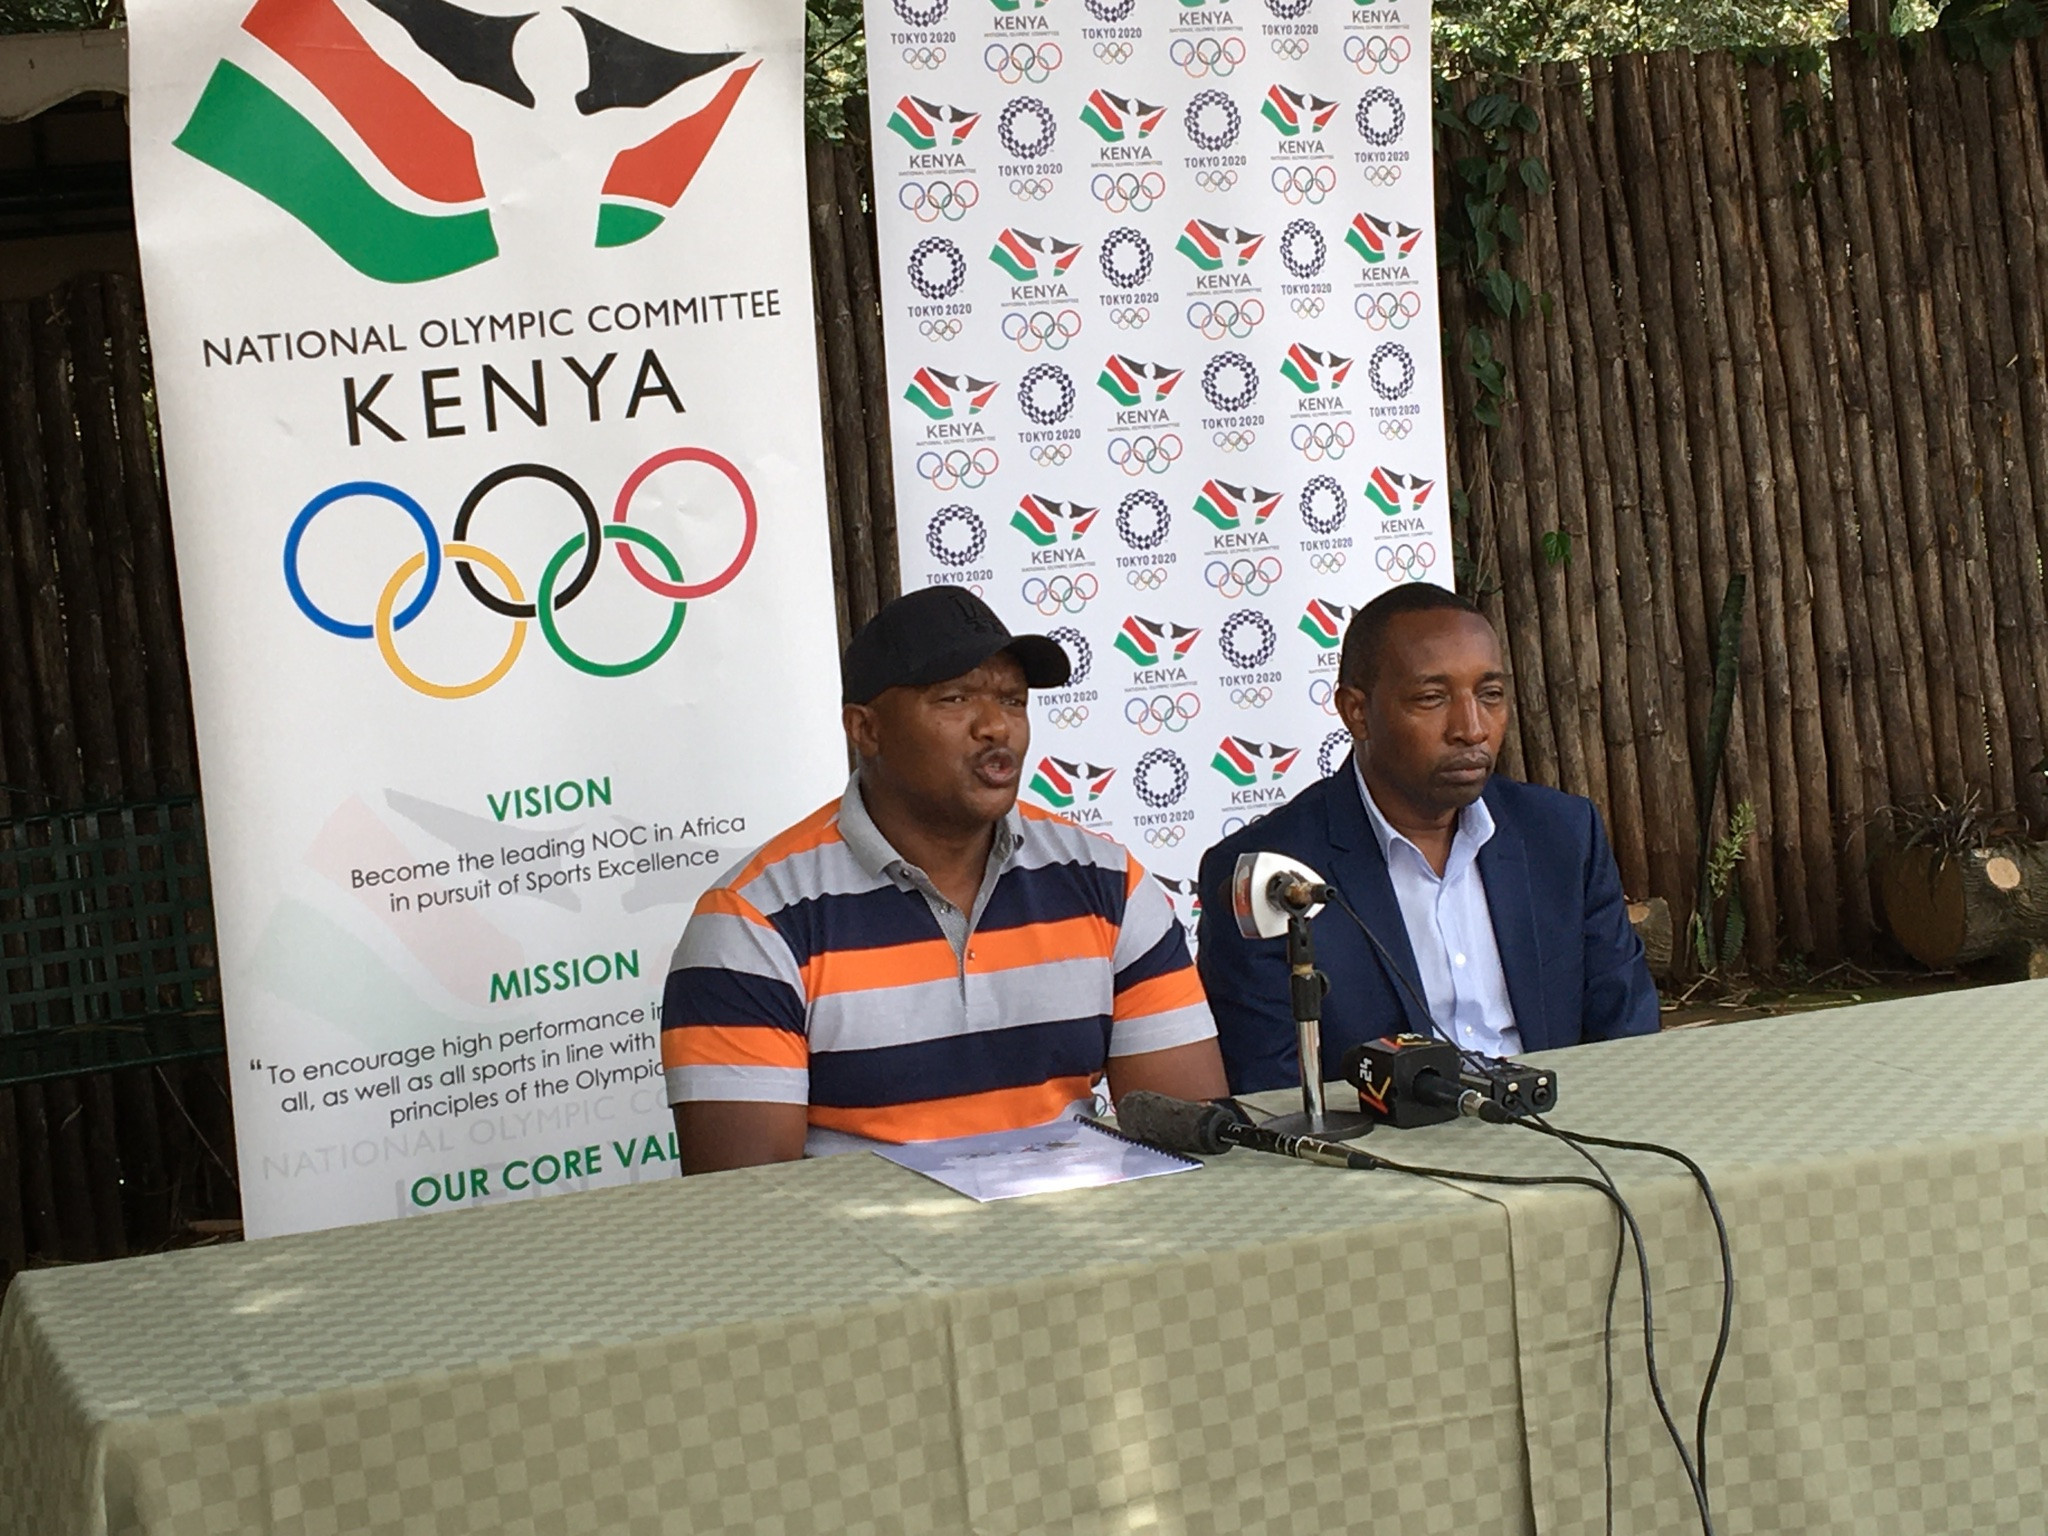 National Olympic Committee of Kenya appoint lead consultant of strength and conditioning